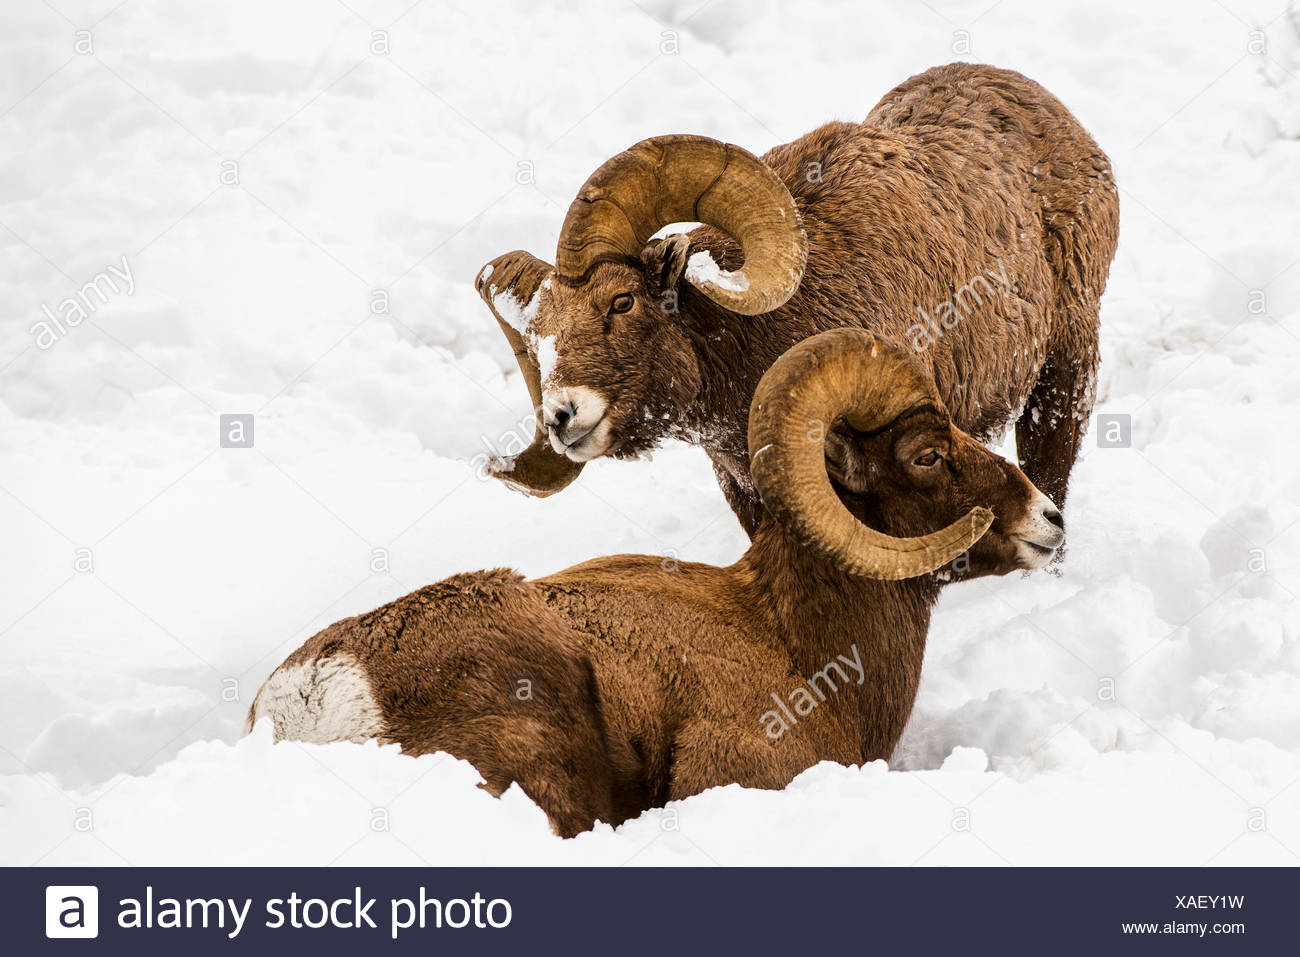 Large Bighorn Ram (Ovis canadensis) approaches another large Bighorn ram lying in the snow, Shoshone National Forest Stock Photo